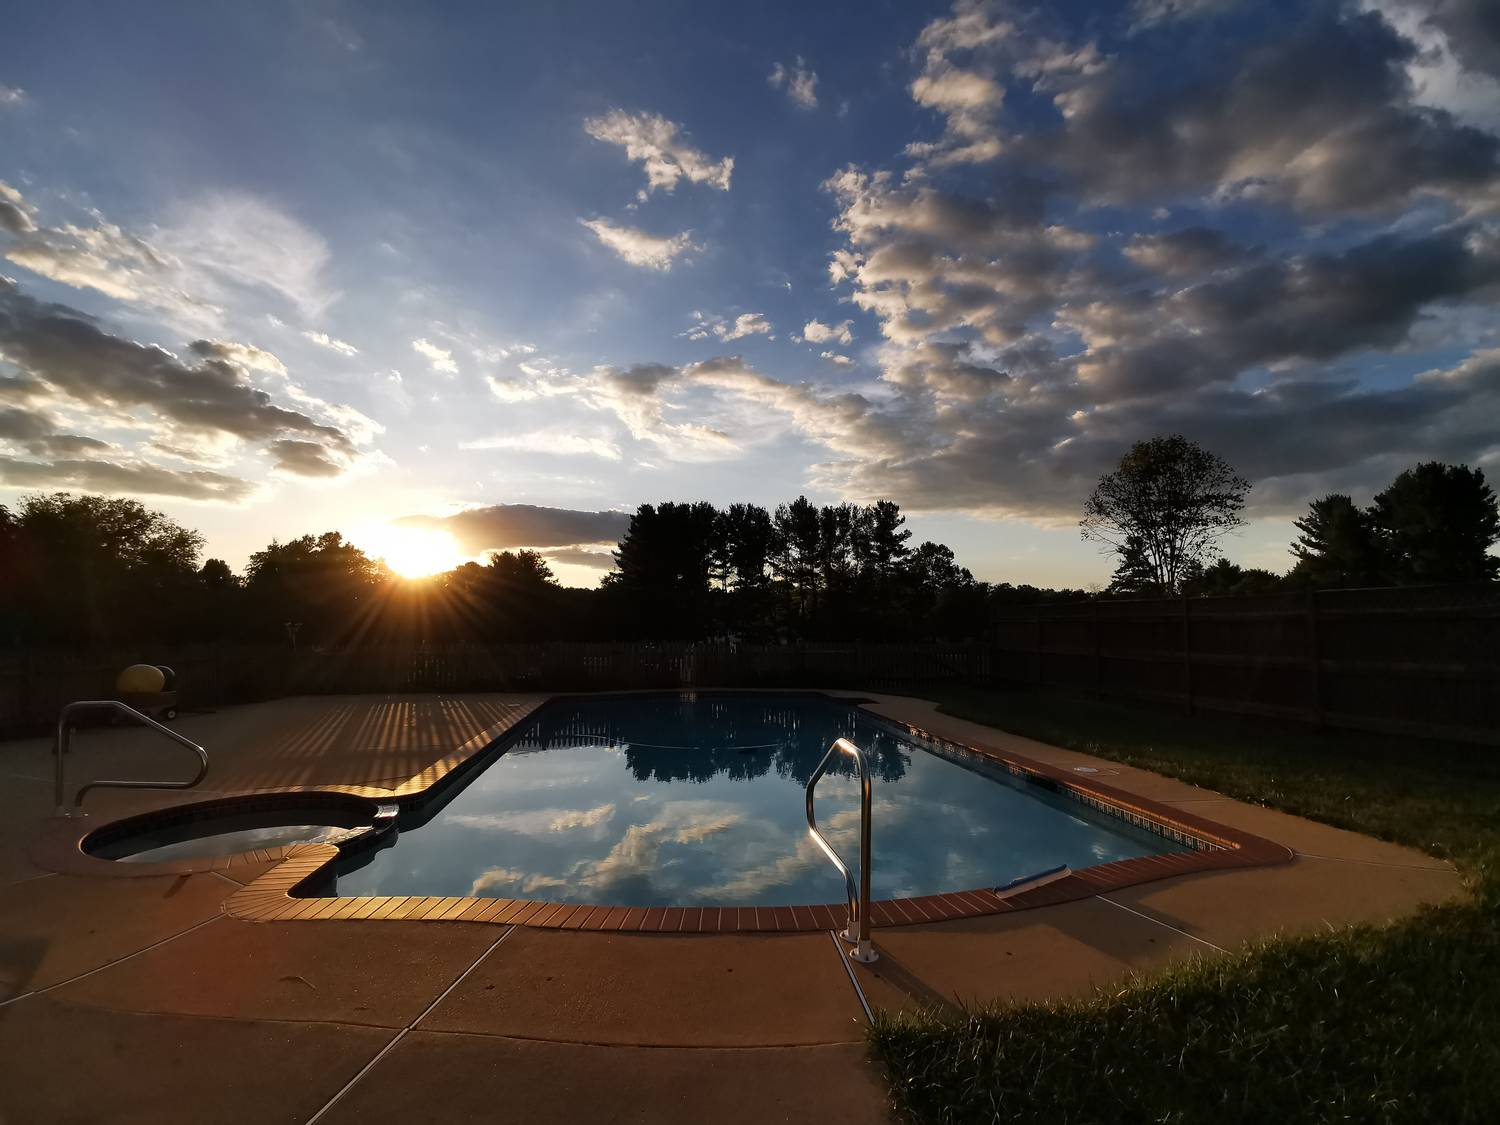 Sunset over the swimming pool. - Smartphone vs camera --  Why you need both. - Smartphone vs camera --  Why you need both., Sony RX100 M6, Huawei P30 Pro - Tony Karp, design, art, photography, techno-impressionist, techno-impressionism, aerial photography , drone , drones , dji , mavic pro , video , 3D printing - Books -